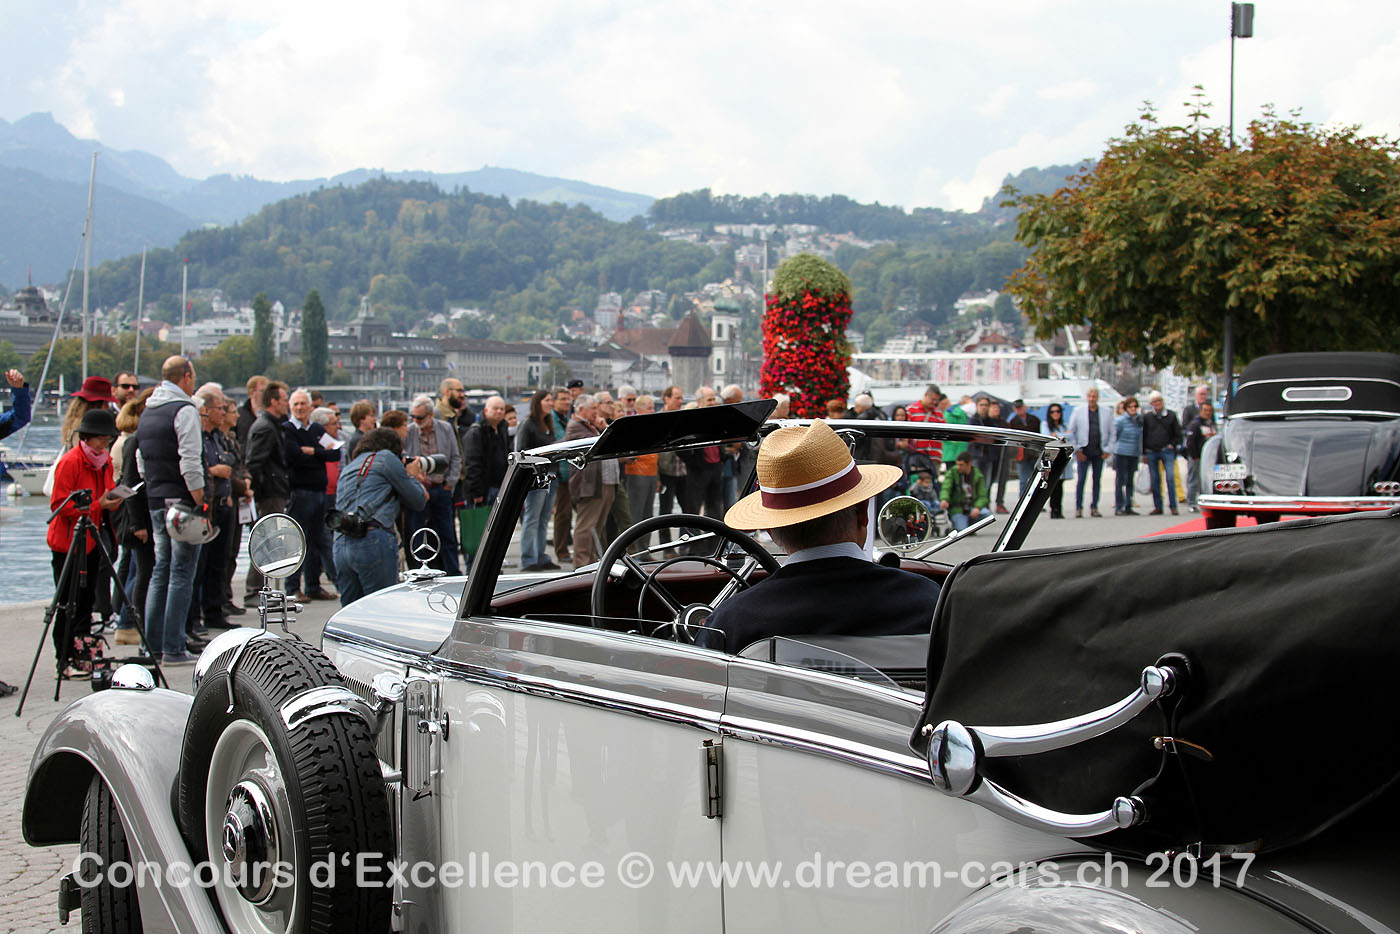 Concours d'Excellence Luzern